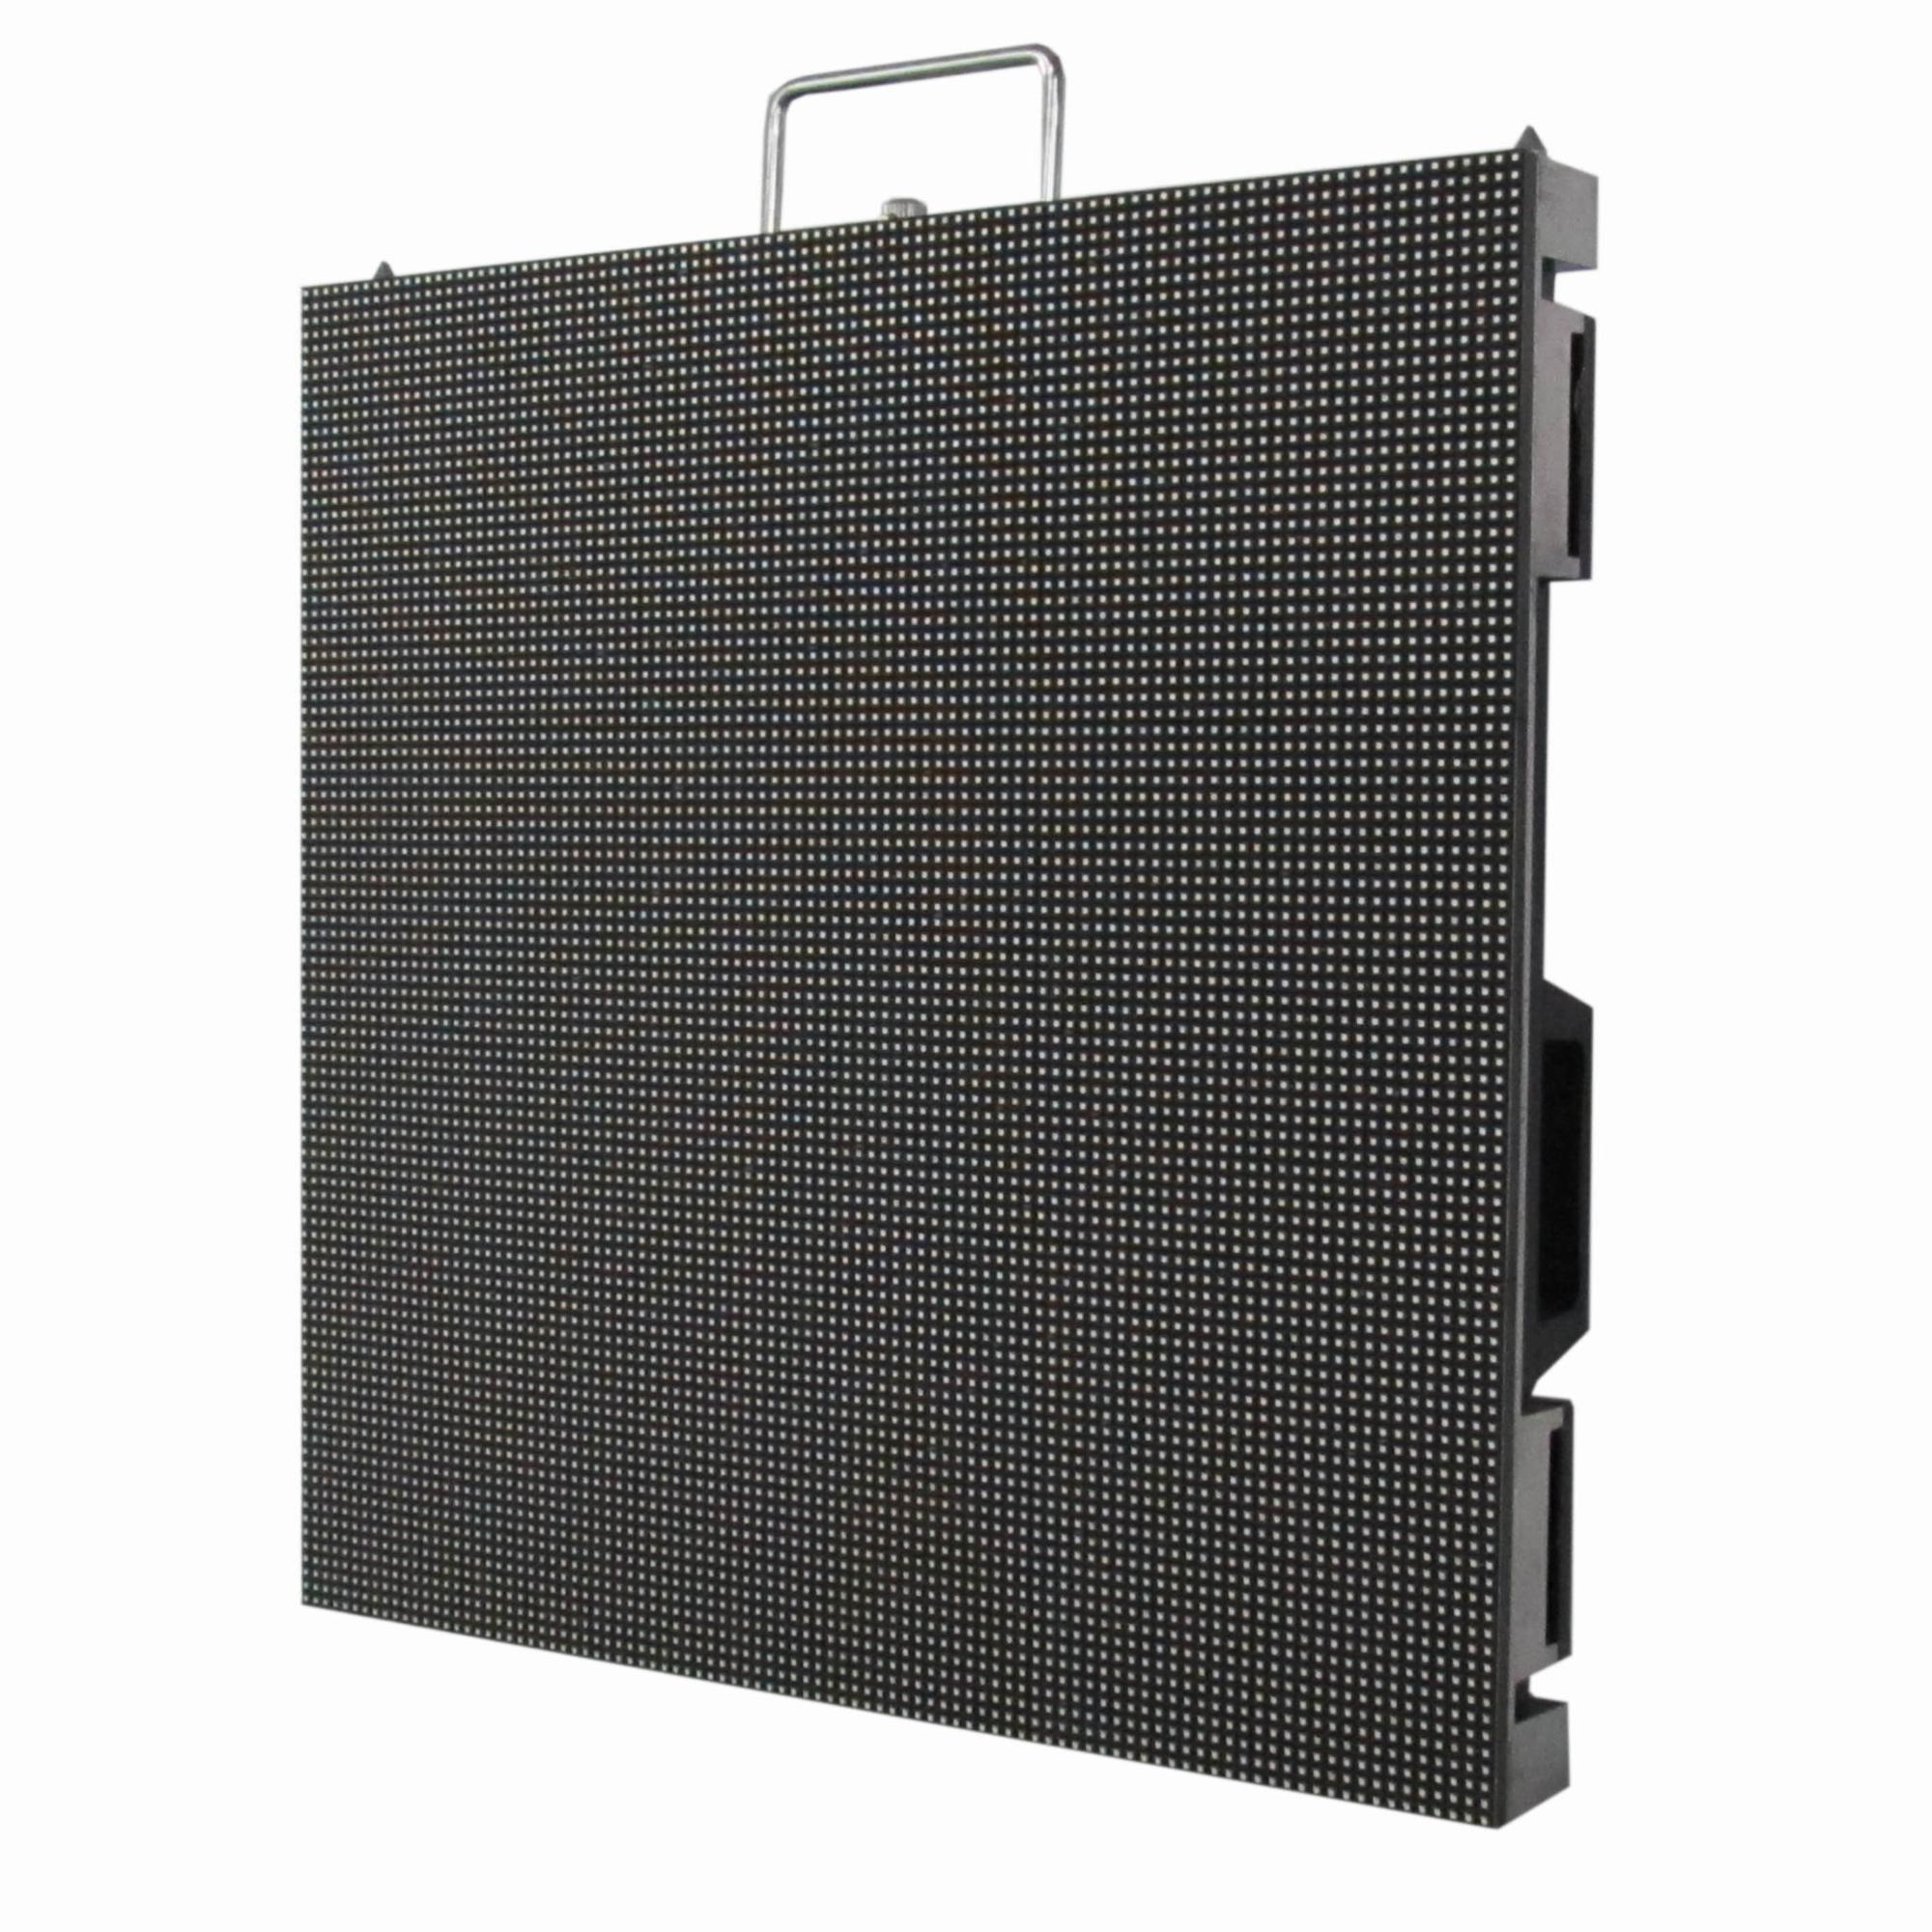 P4 led rental display.JPG